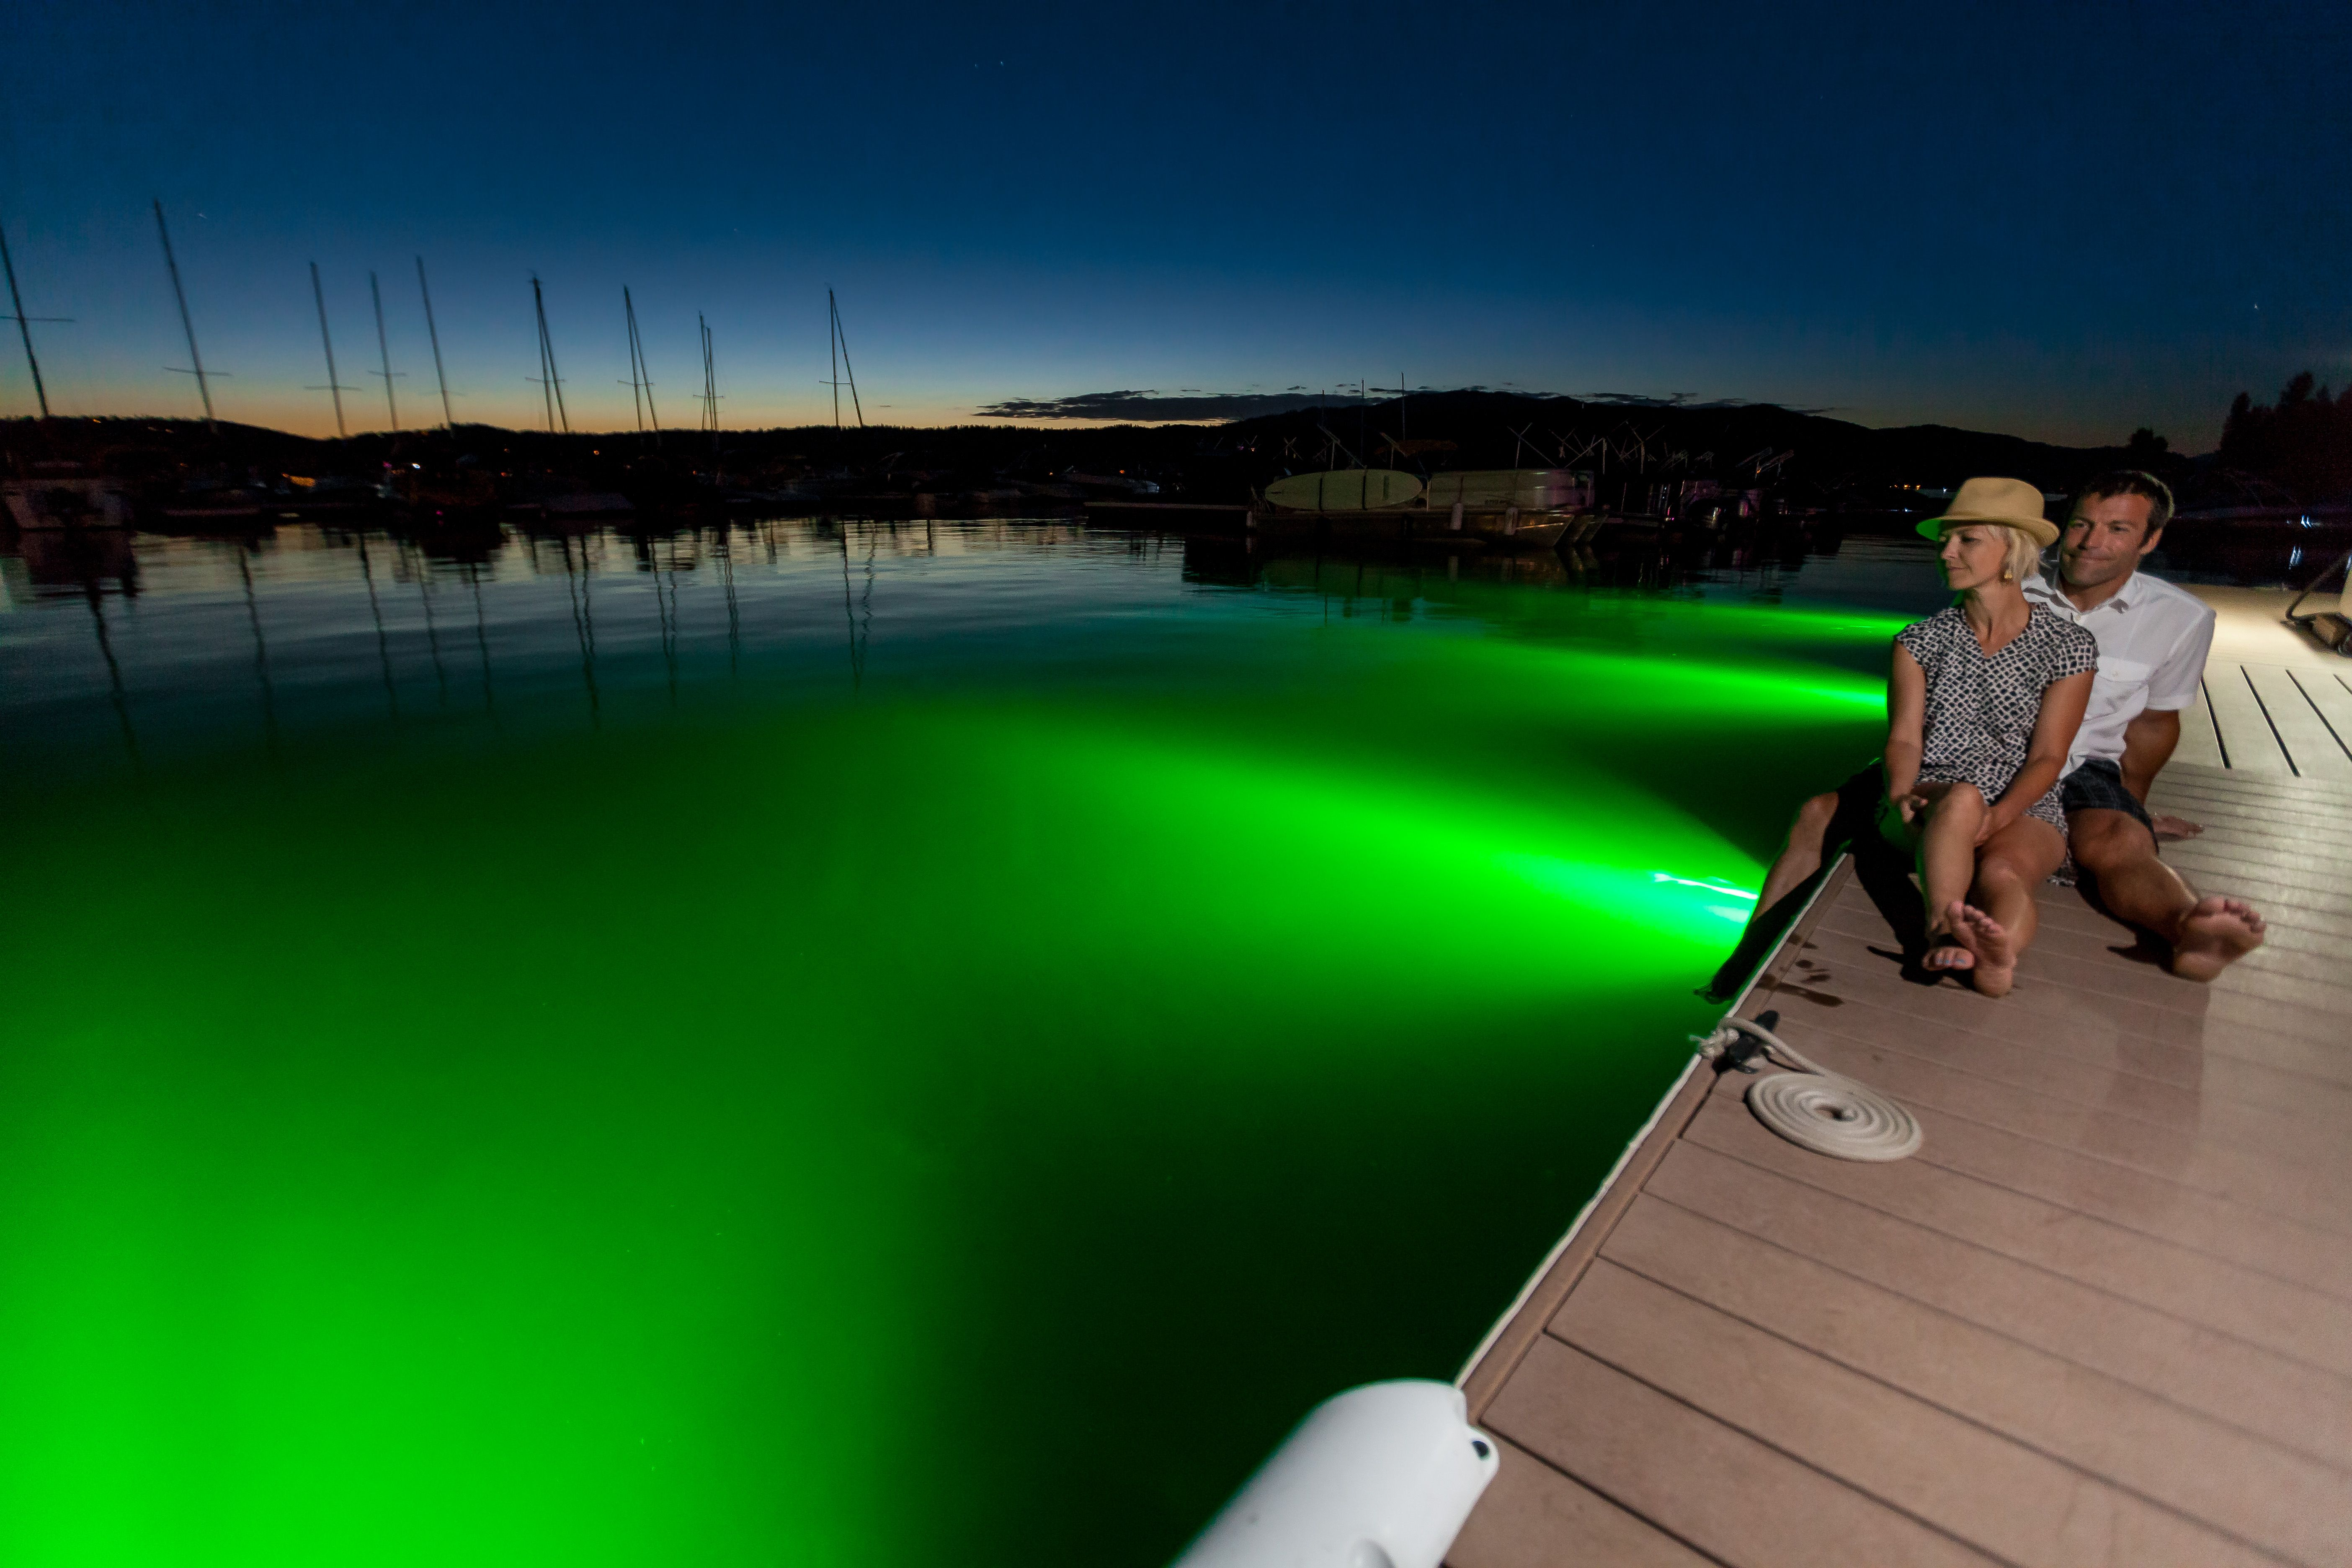 light up your summer nights with lifeform underwater dock lights